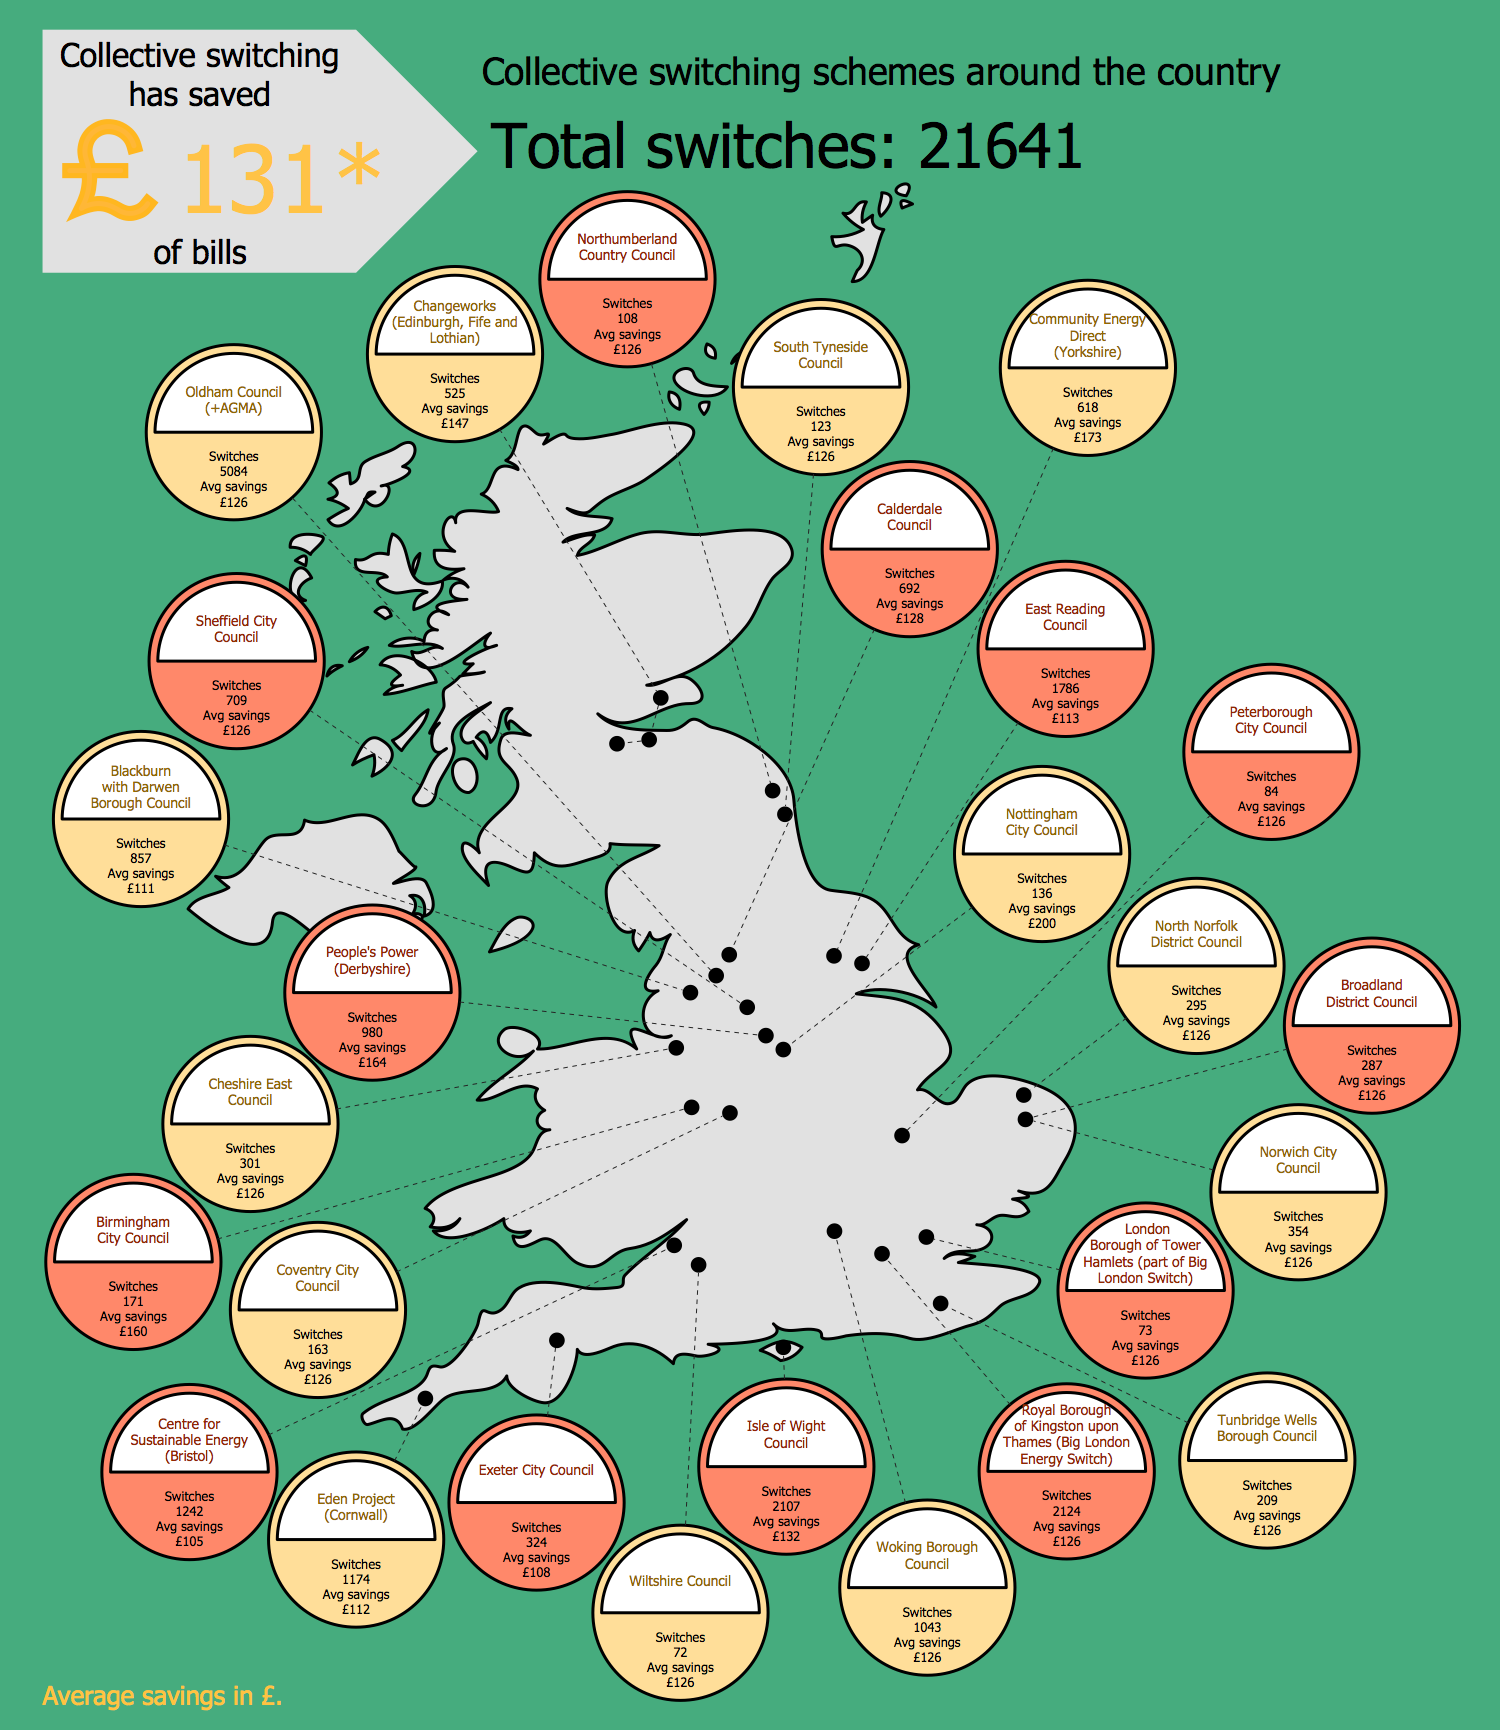 Collective Switching Schemes Around the Country